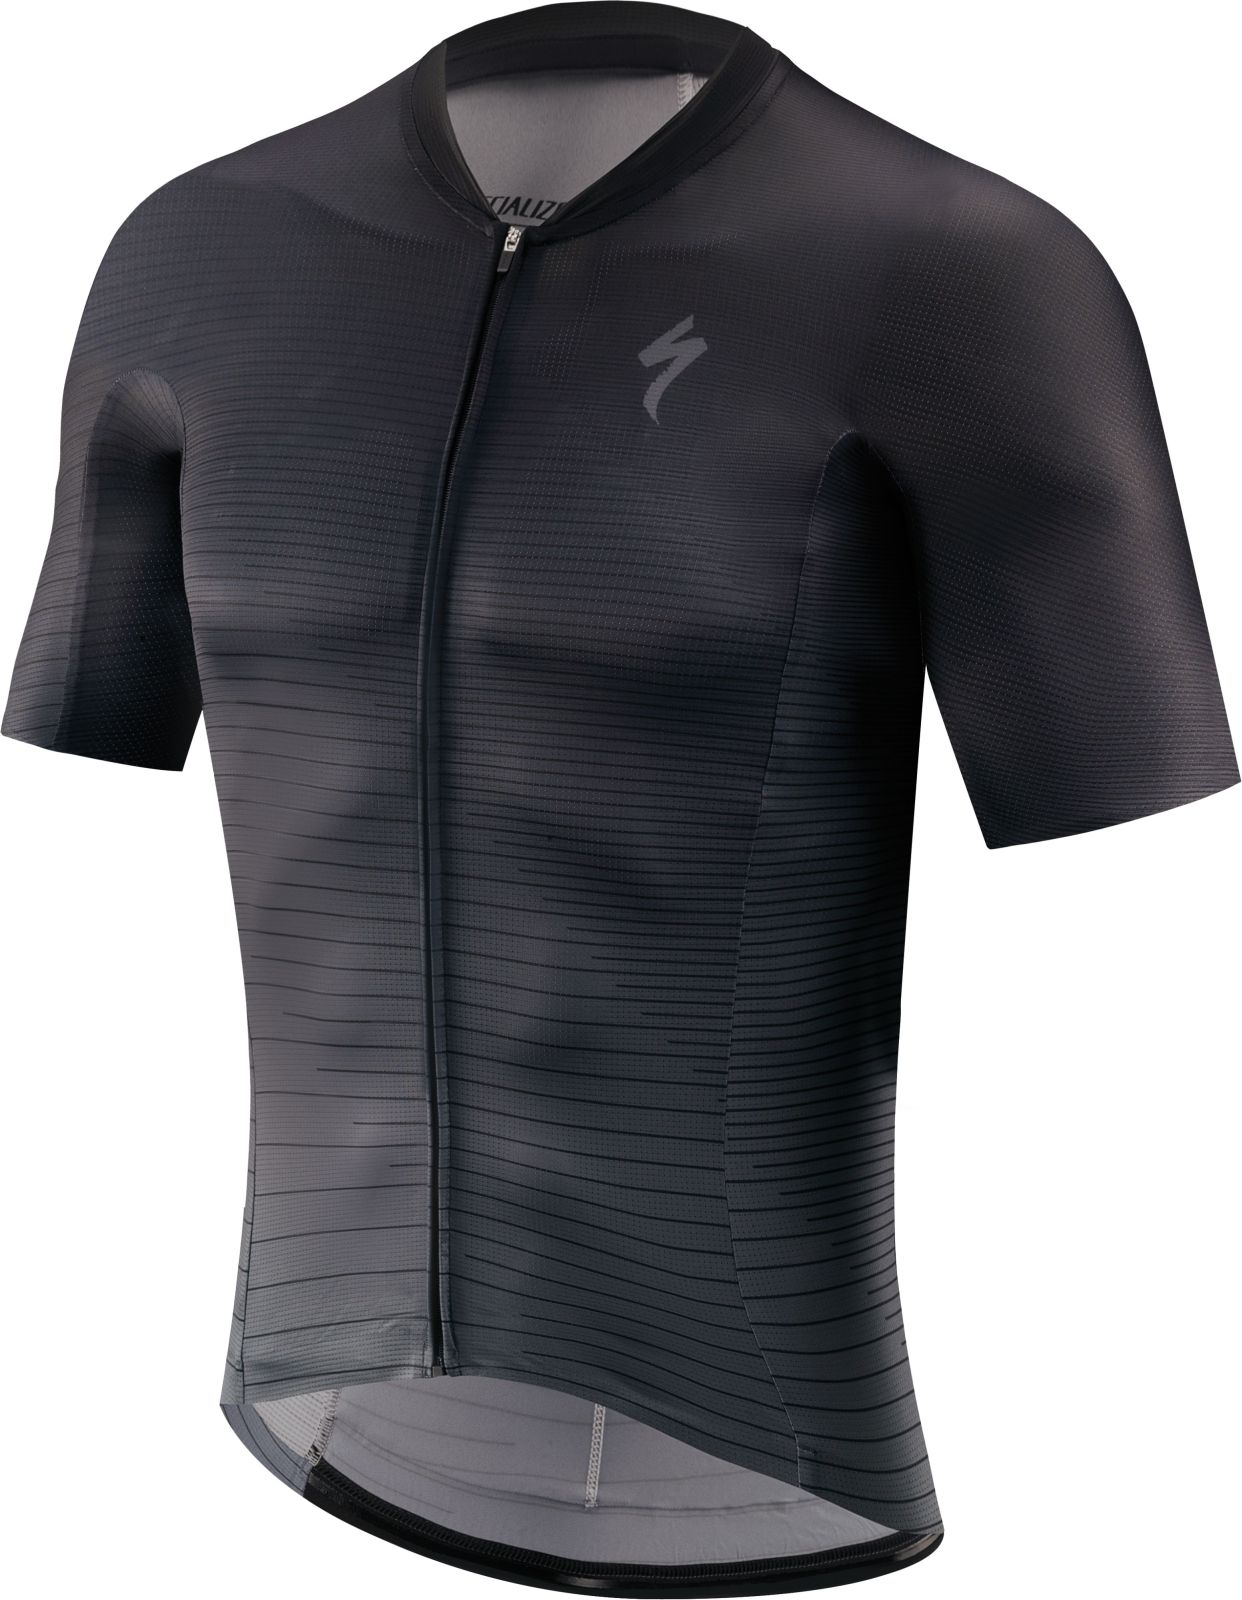 Specialized SL R Jersey SS - black/charcoal XL